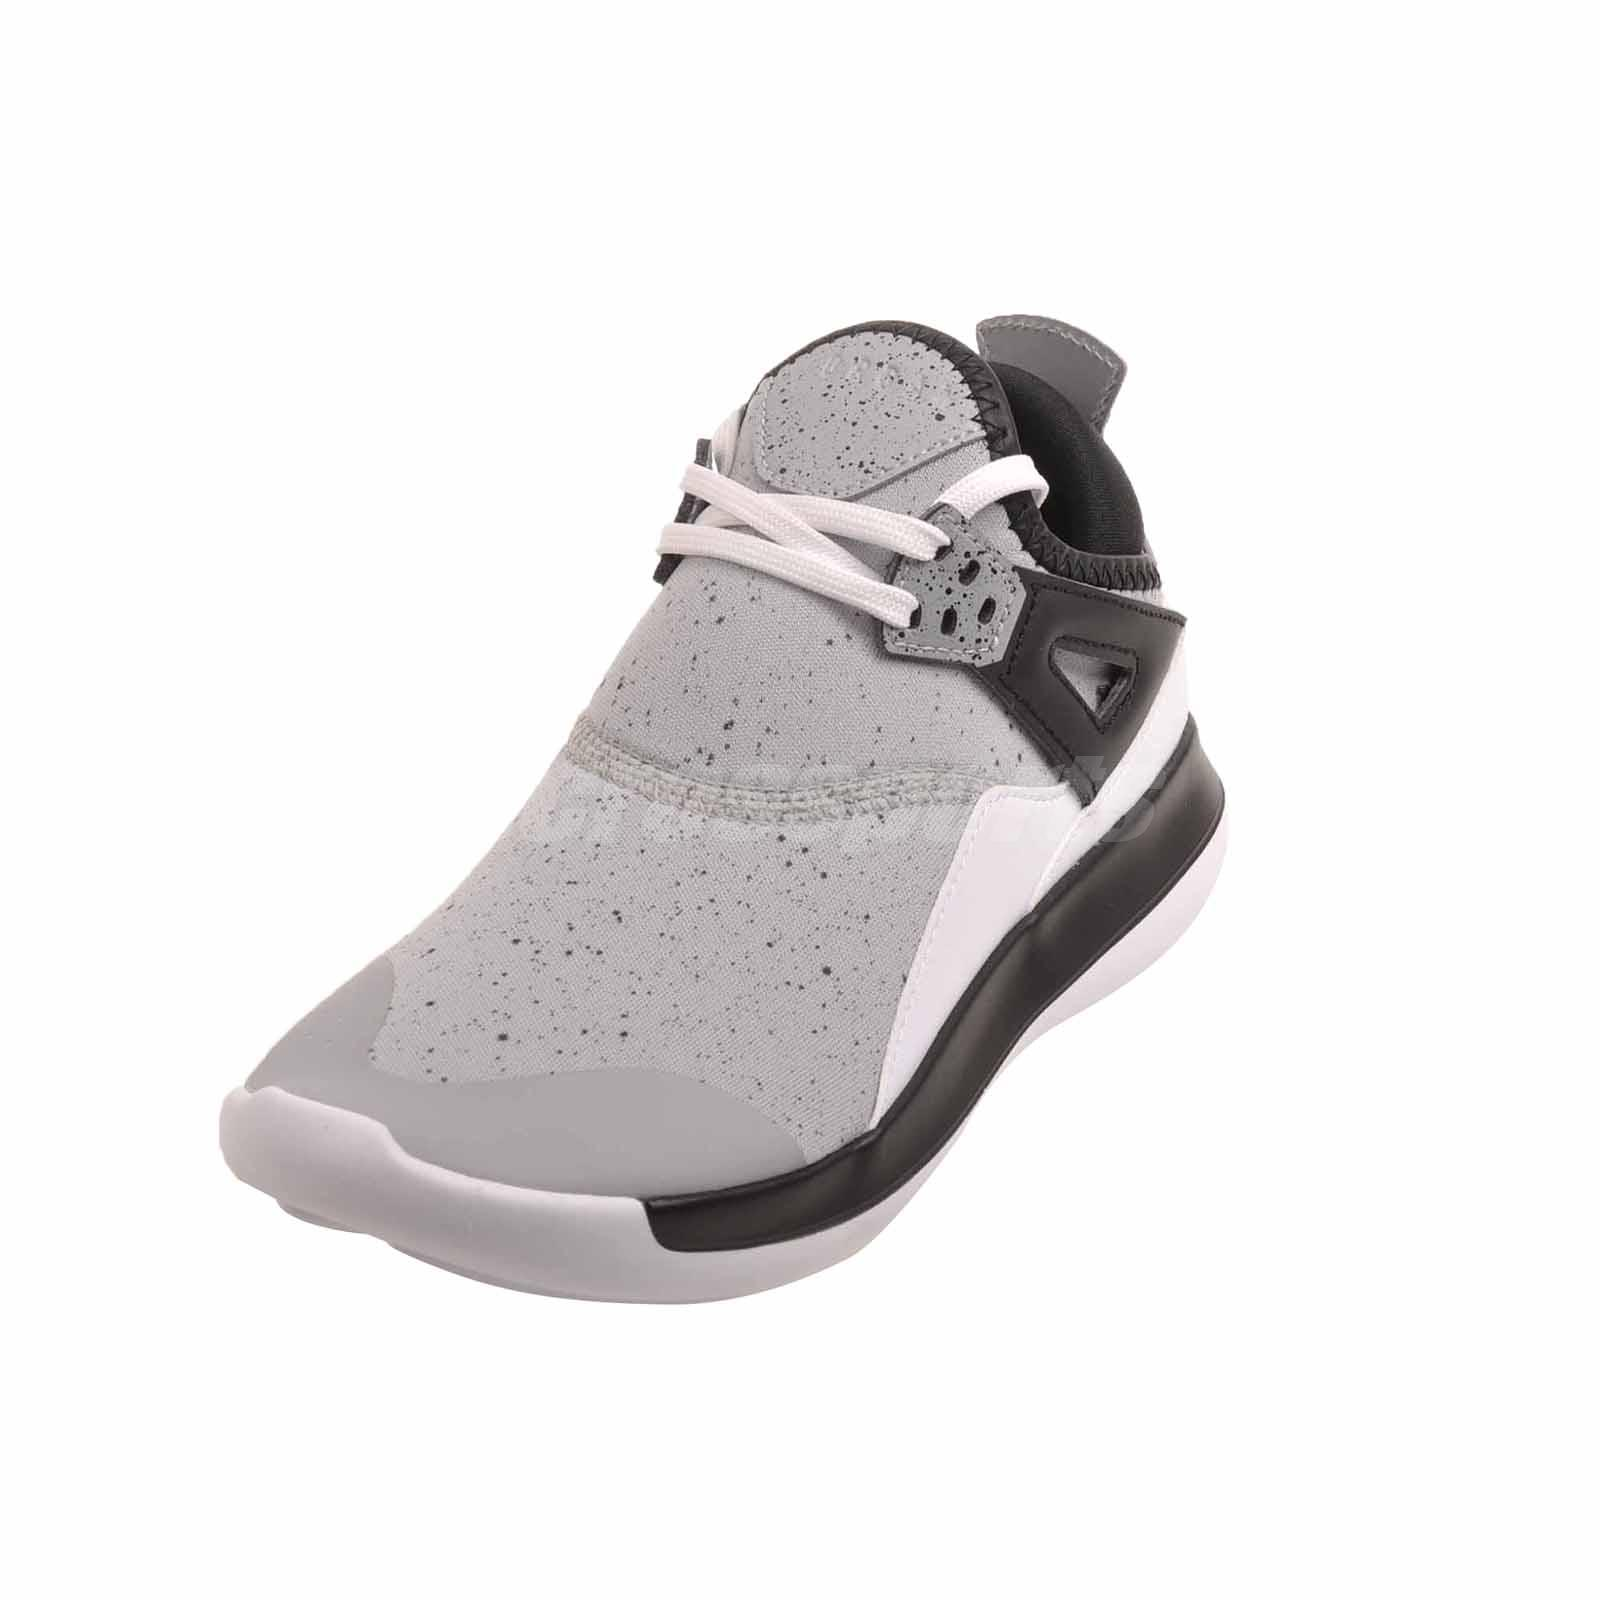 0b251fe4b23 Nike Jordan Fly 89 BG Basketball Kids Youth Shoes Grey Air AA4039 ...